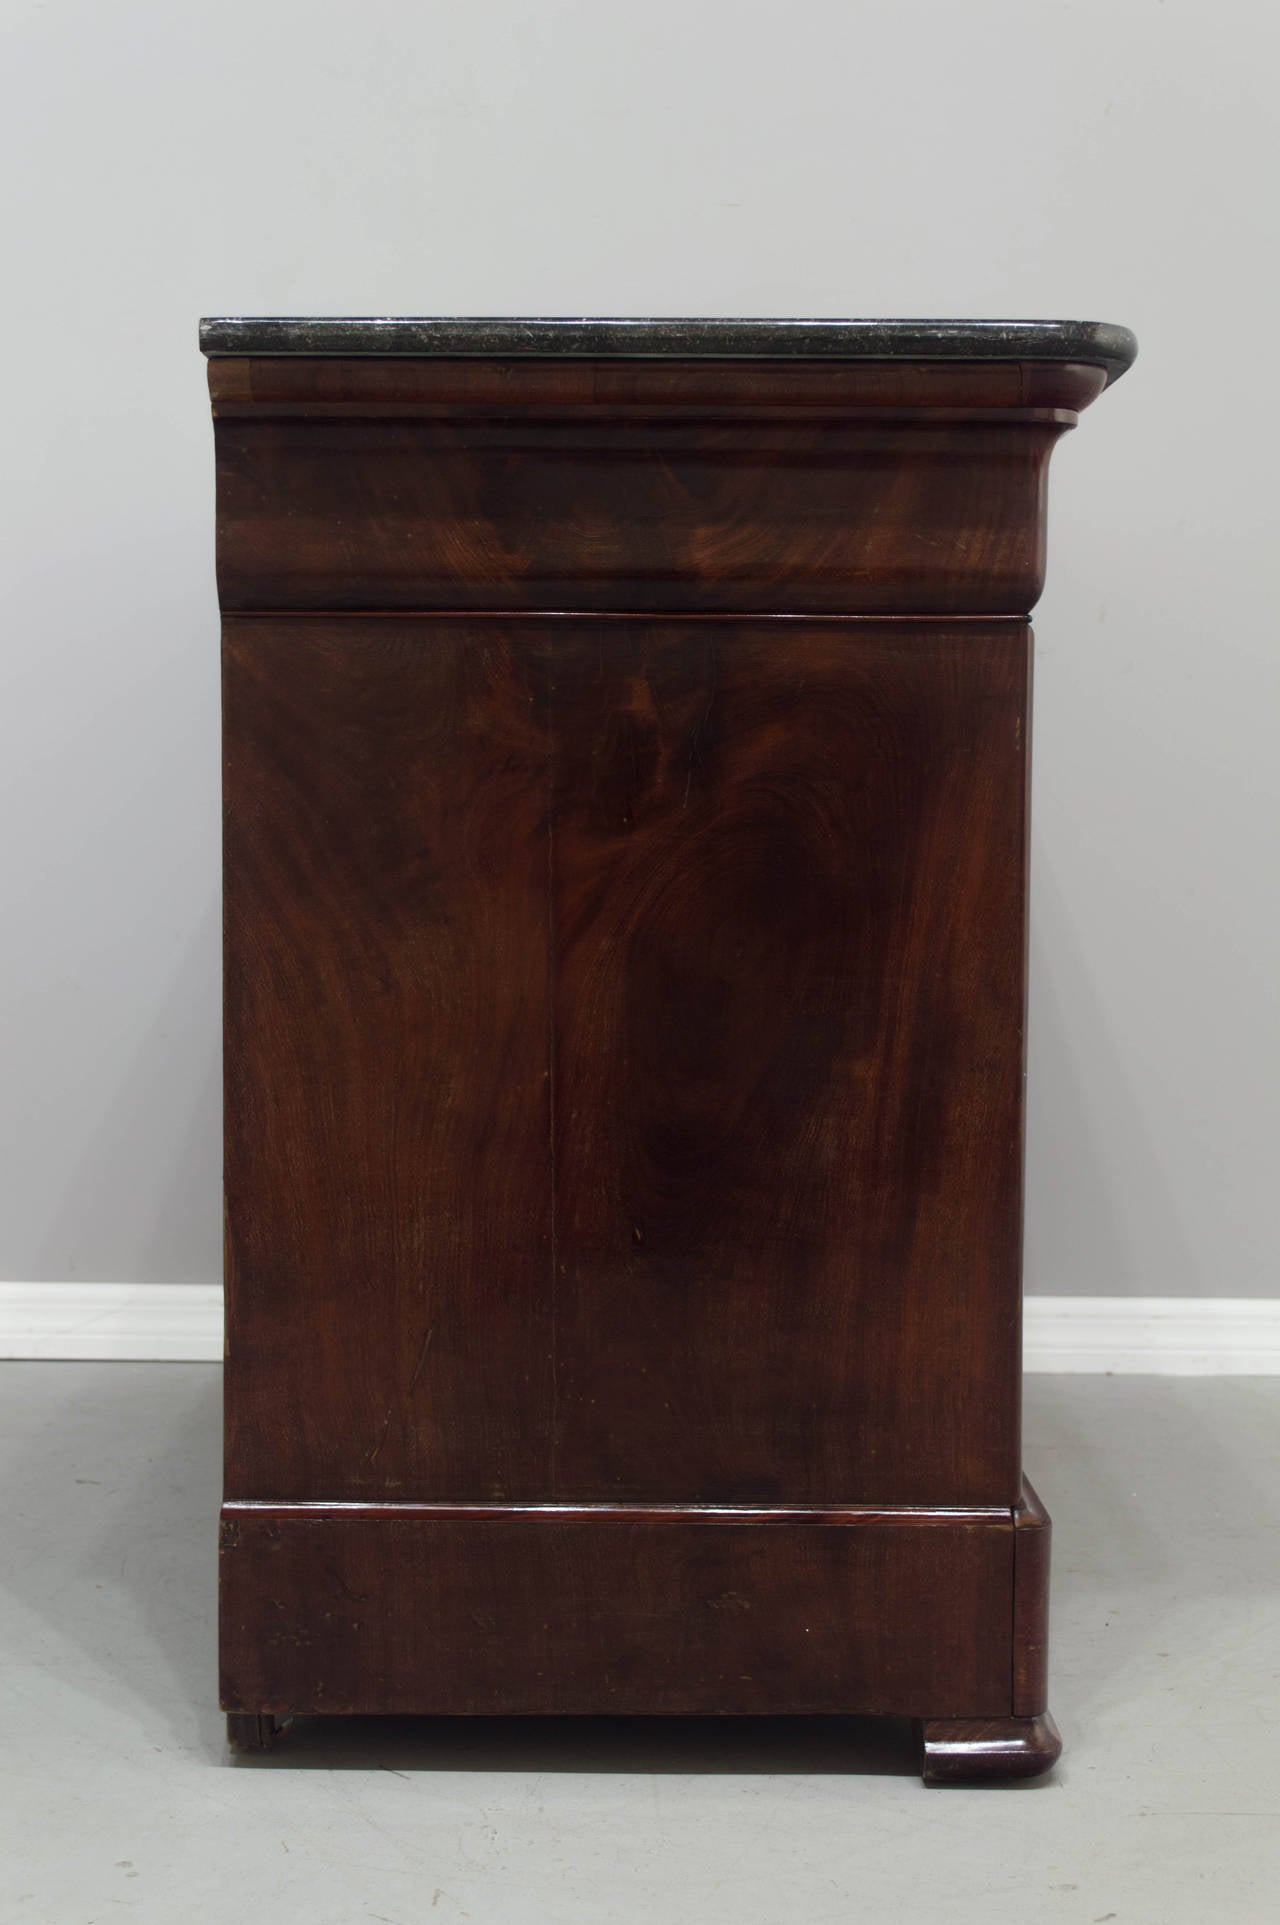 19th century louis philippe mahogany commode or secretaire at 1stdibs